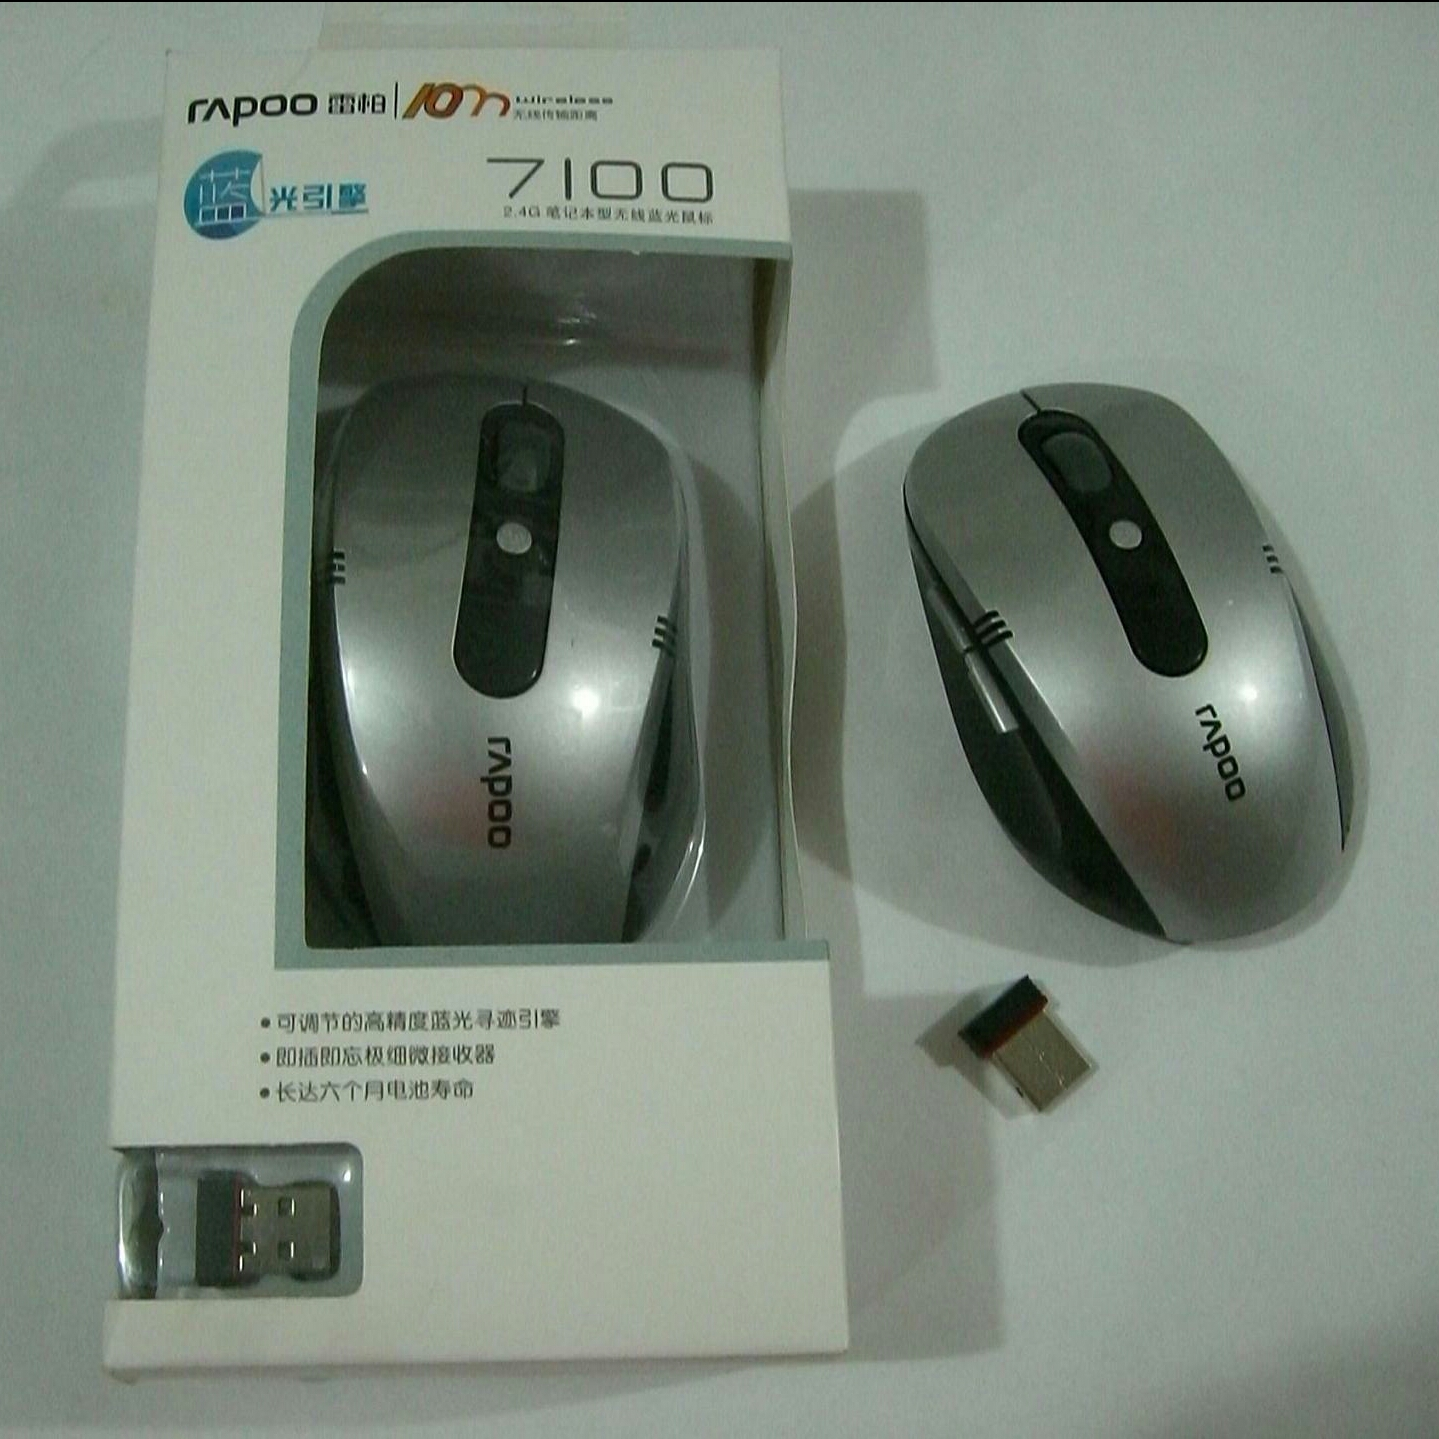 MOUSE WIRELESS OPTIC 2.4G USB RAPOO 7100